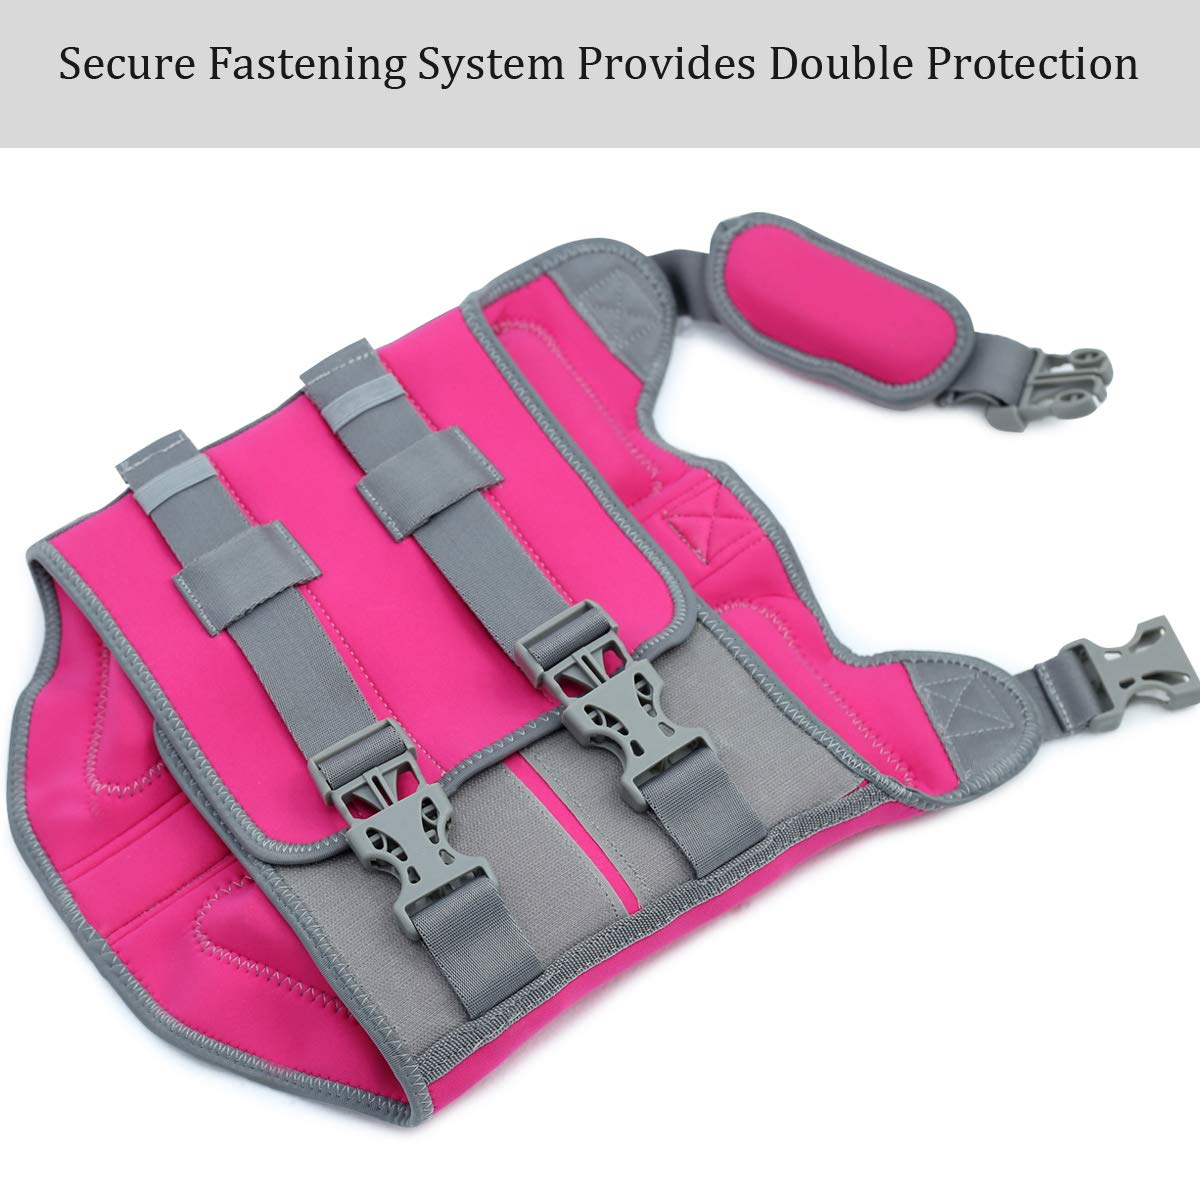 Vivaglory Pet Life Vest, Skin-Friendly Neoprene Dog Safety Vest with Superior Buoyancy and Rescue Handle, Reflective & Adjustable, Pink, Medium by Vivaglory (Image #3)